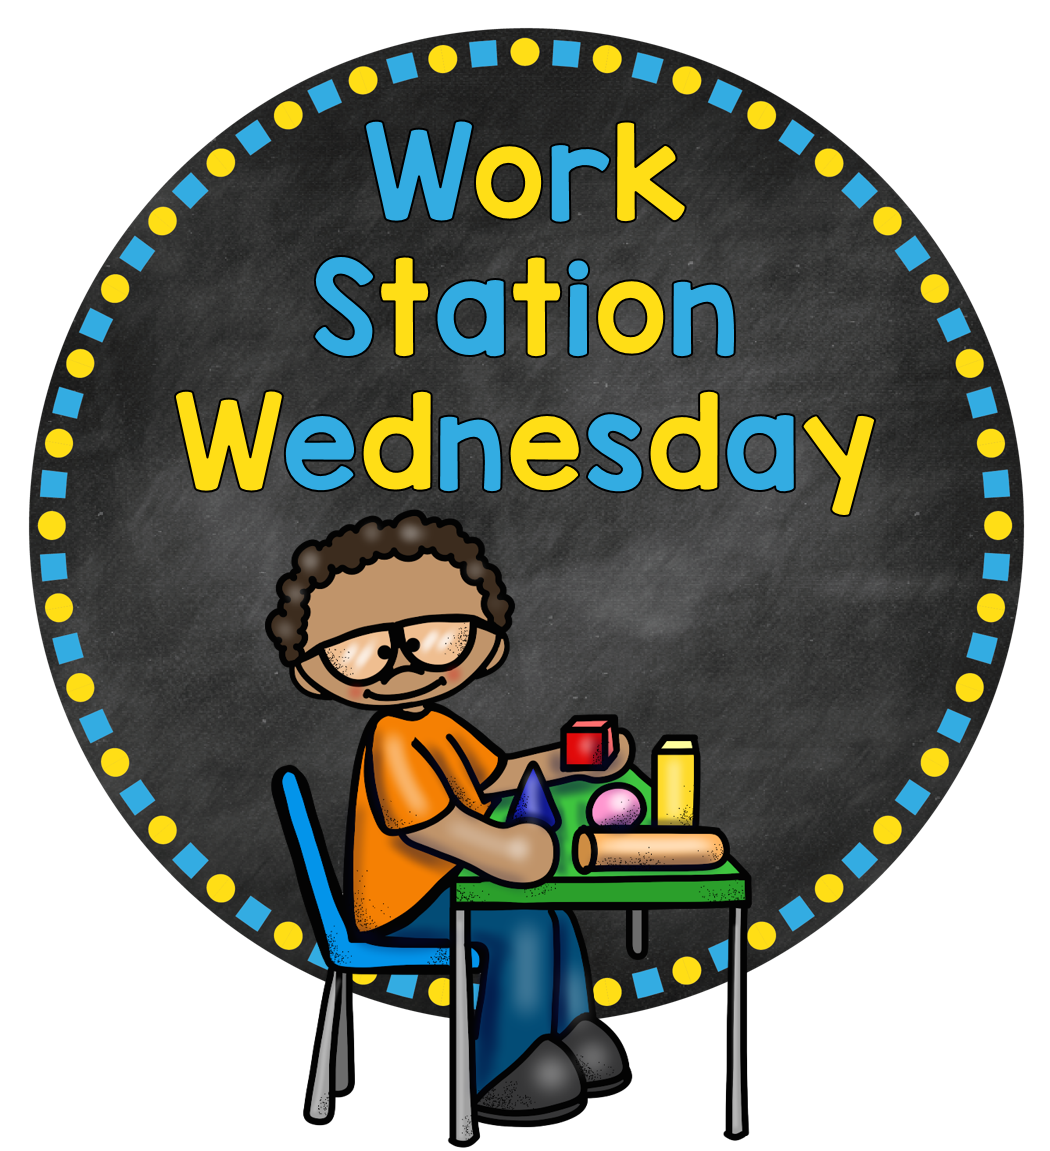 A special kind of. Words clipart work station